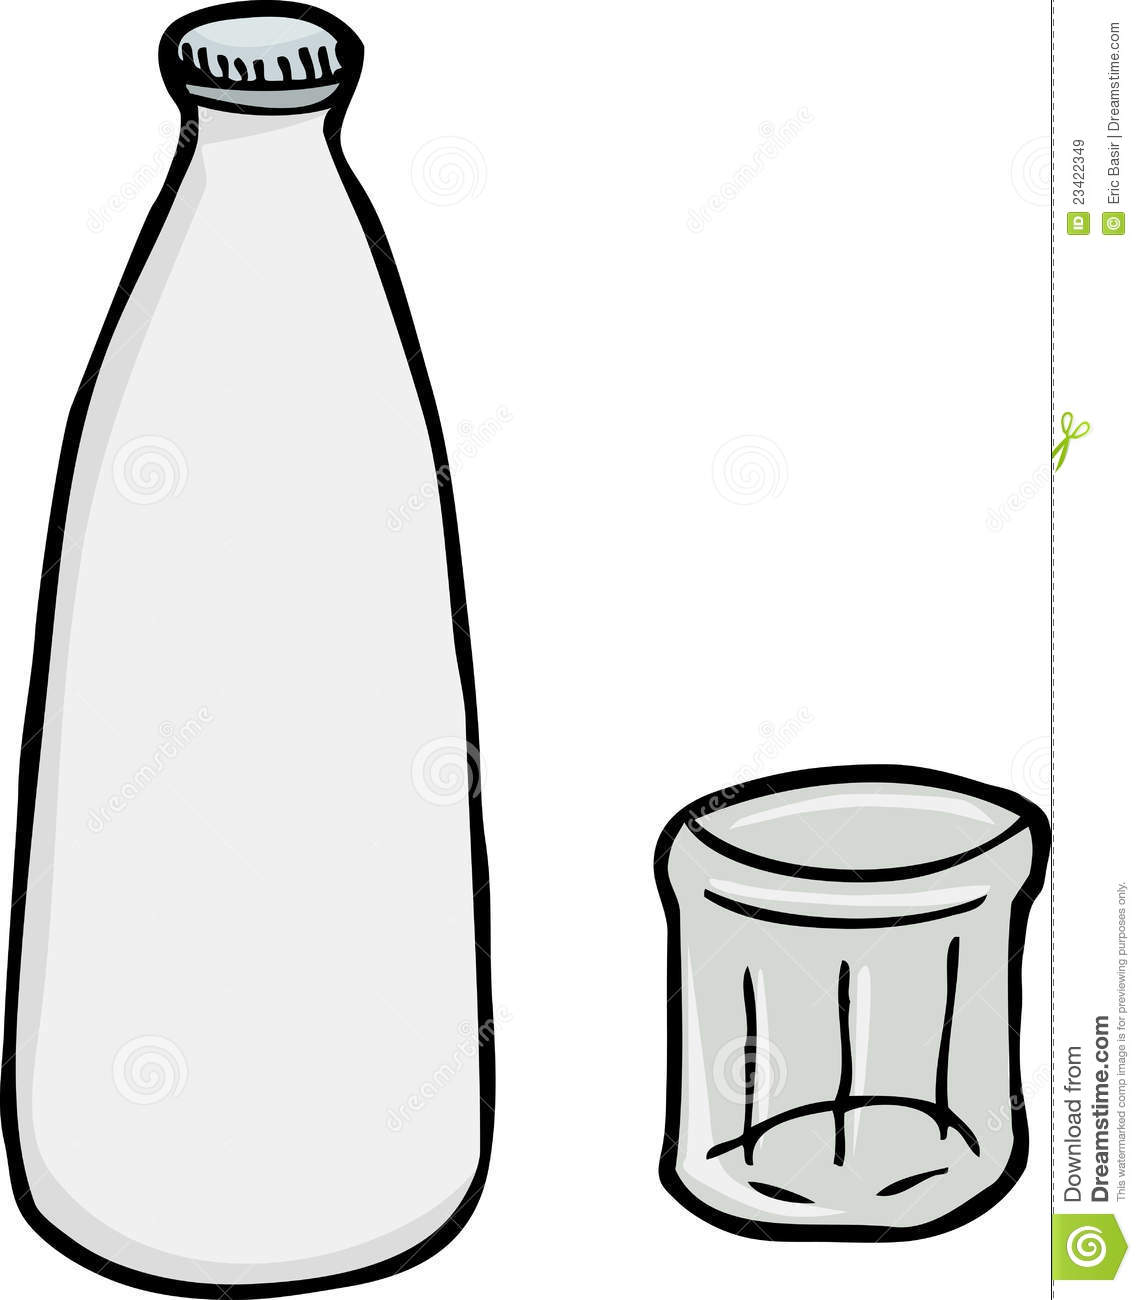 Milk Carton clipart milk bottle Milk glass%20of%20milk%20clipart Chocolate Images Carton